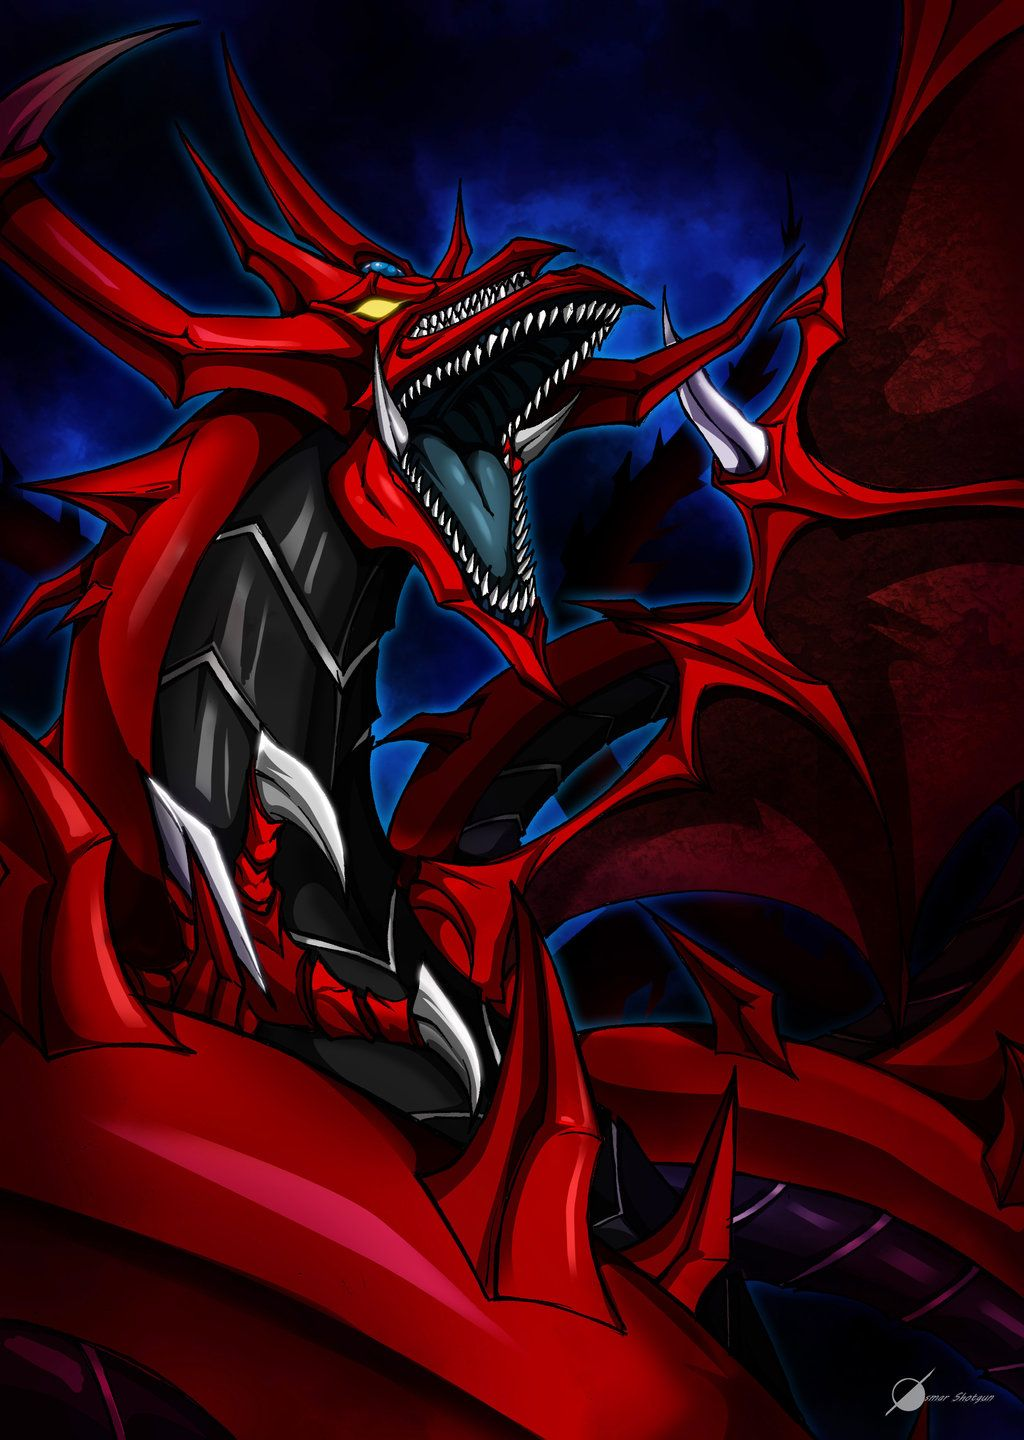 Slifer The Sky Dragon Wallpaper 106 images in Collection Page 3 1024x1440